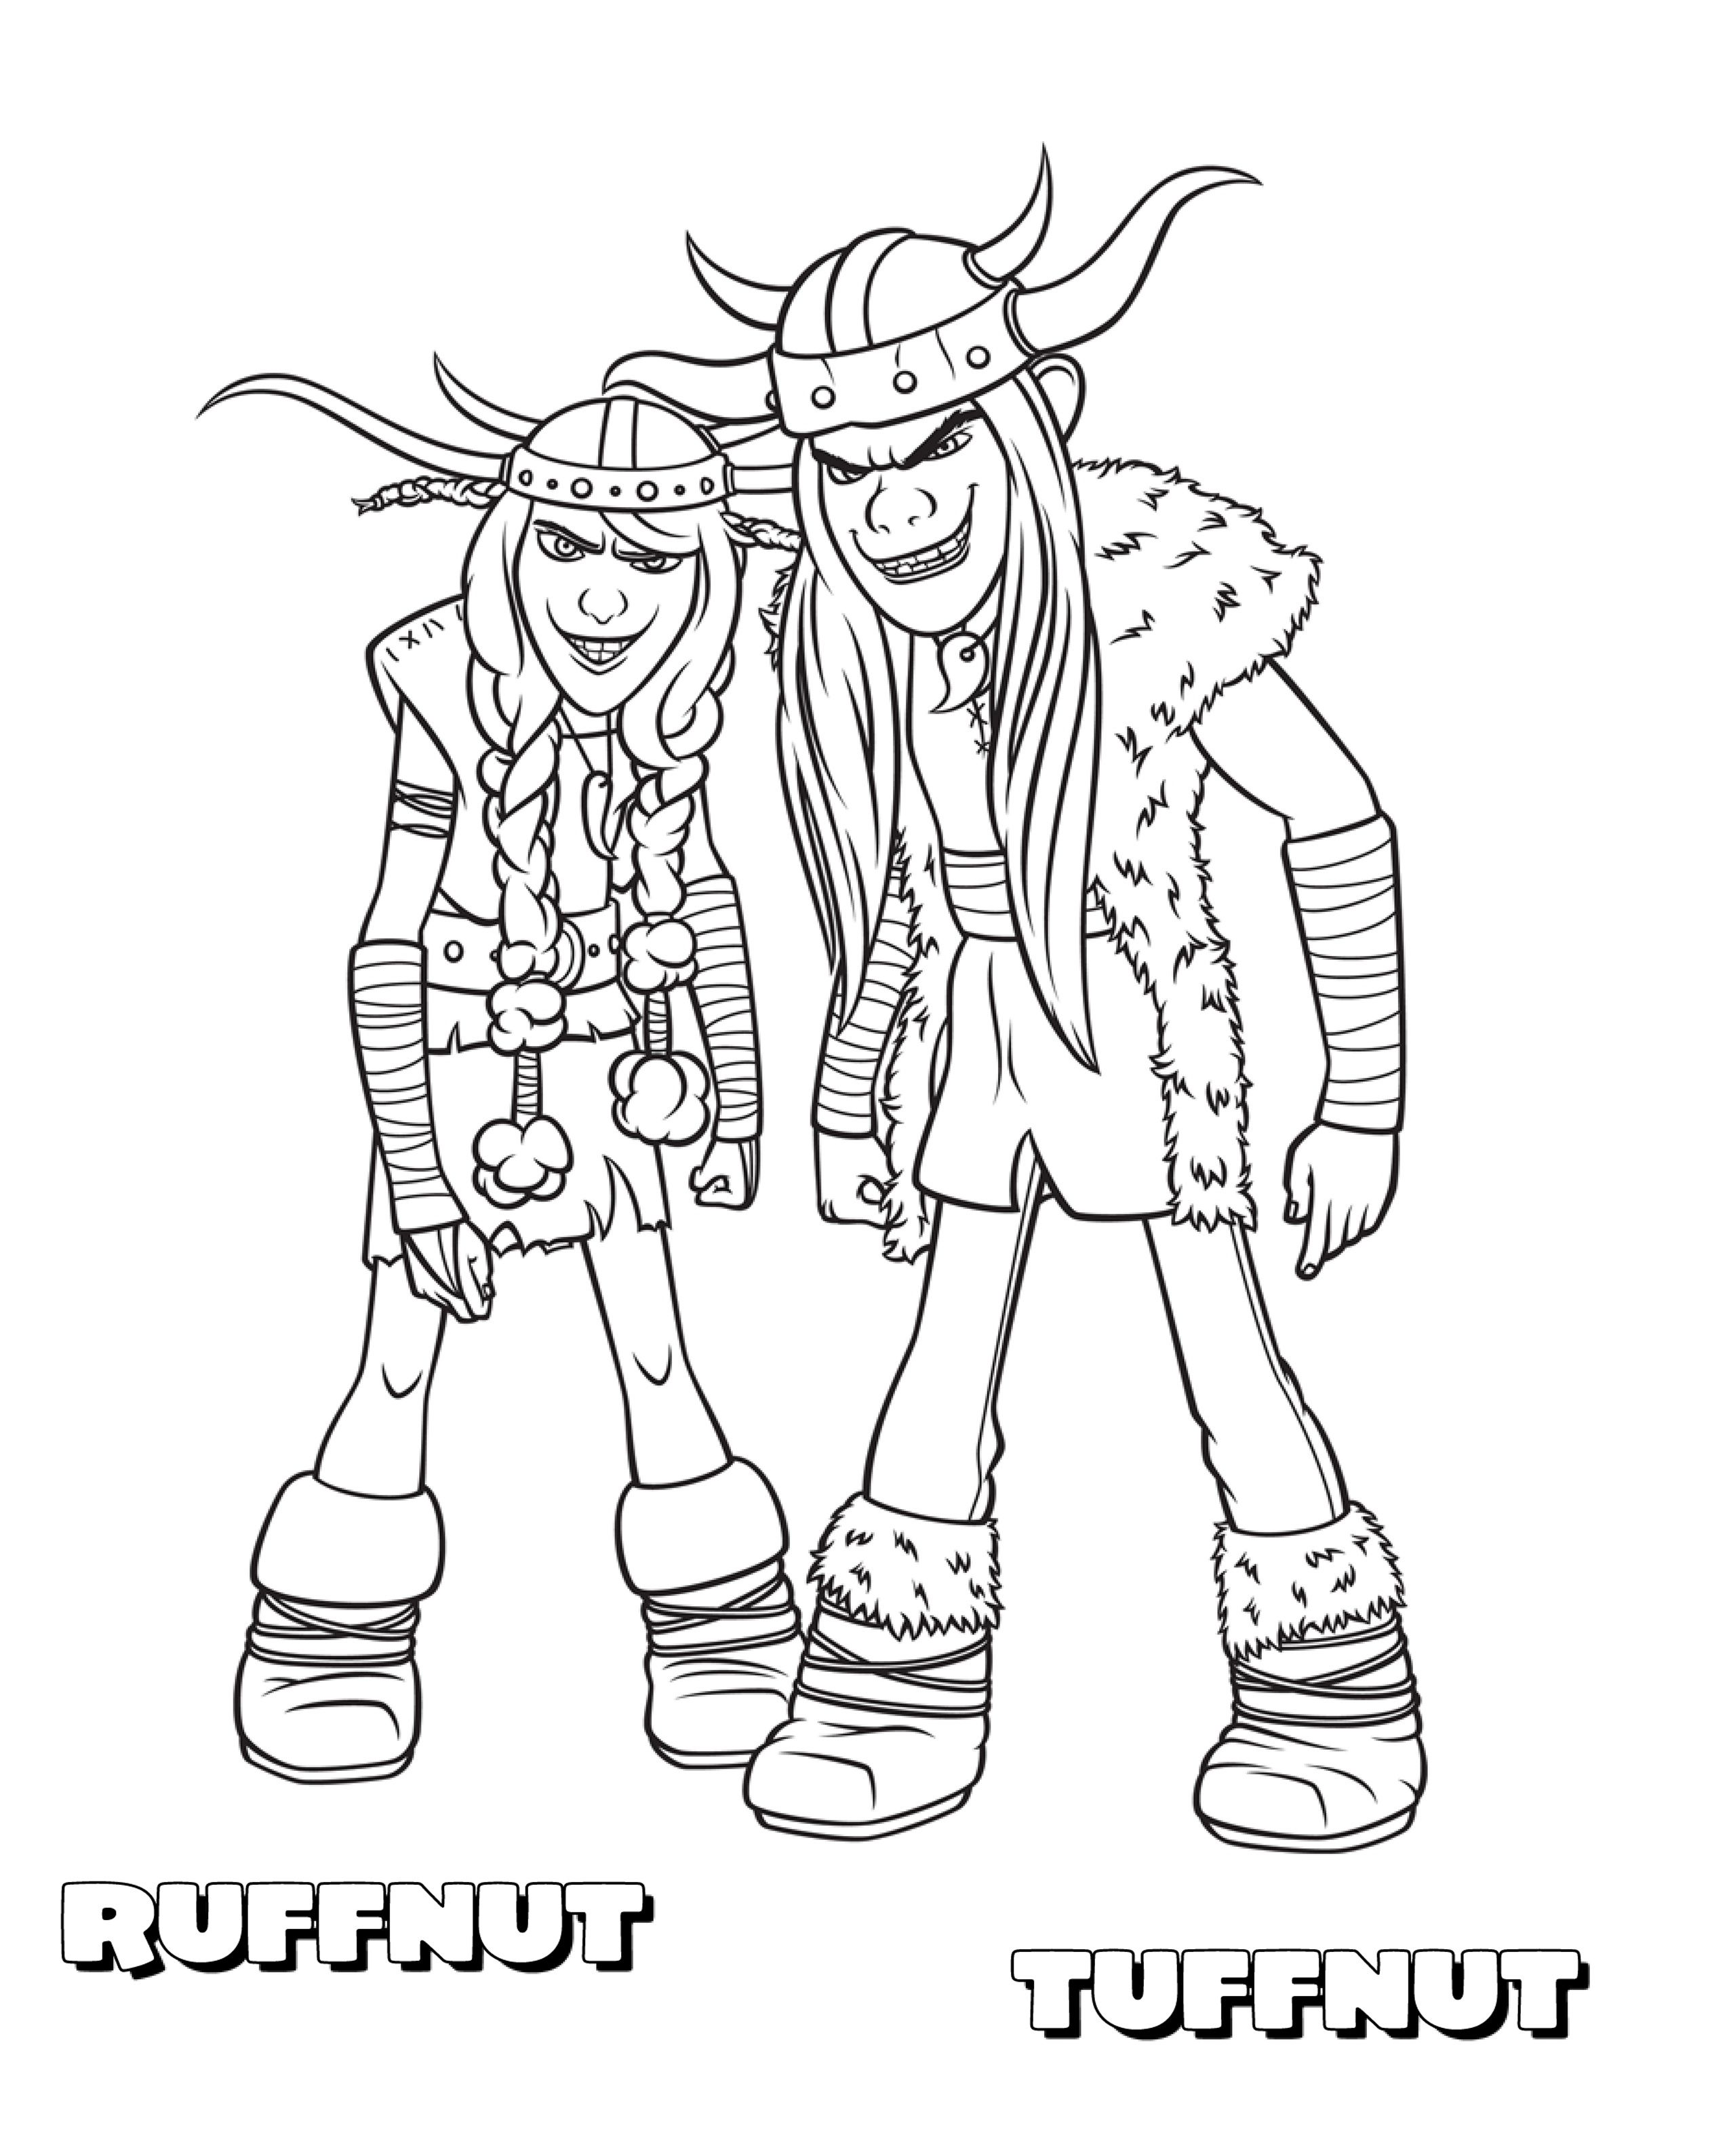 Ruffnut Tuffnut Jpg 2550 3180 How To Train Your Dragon Coloring Pages Book Dragon